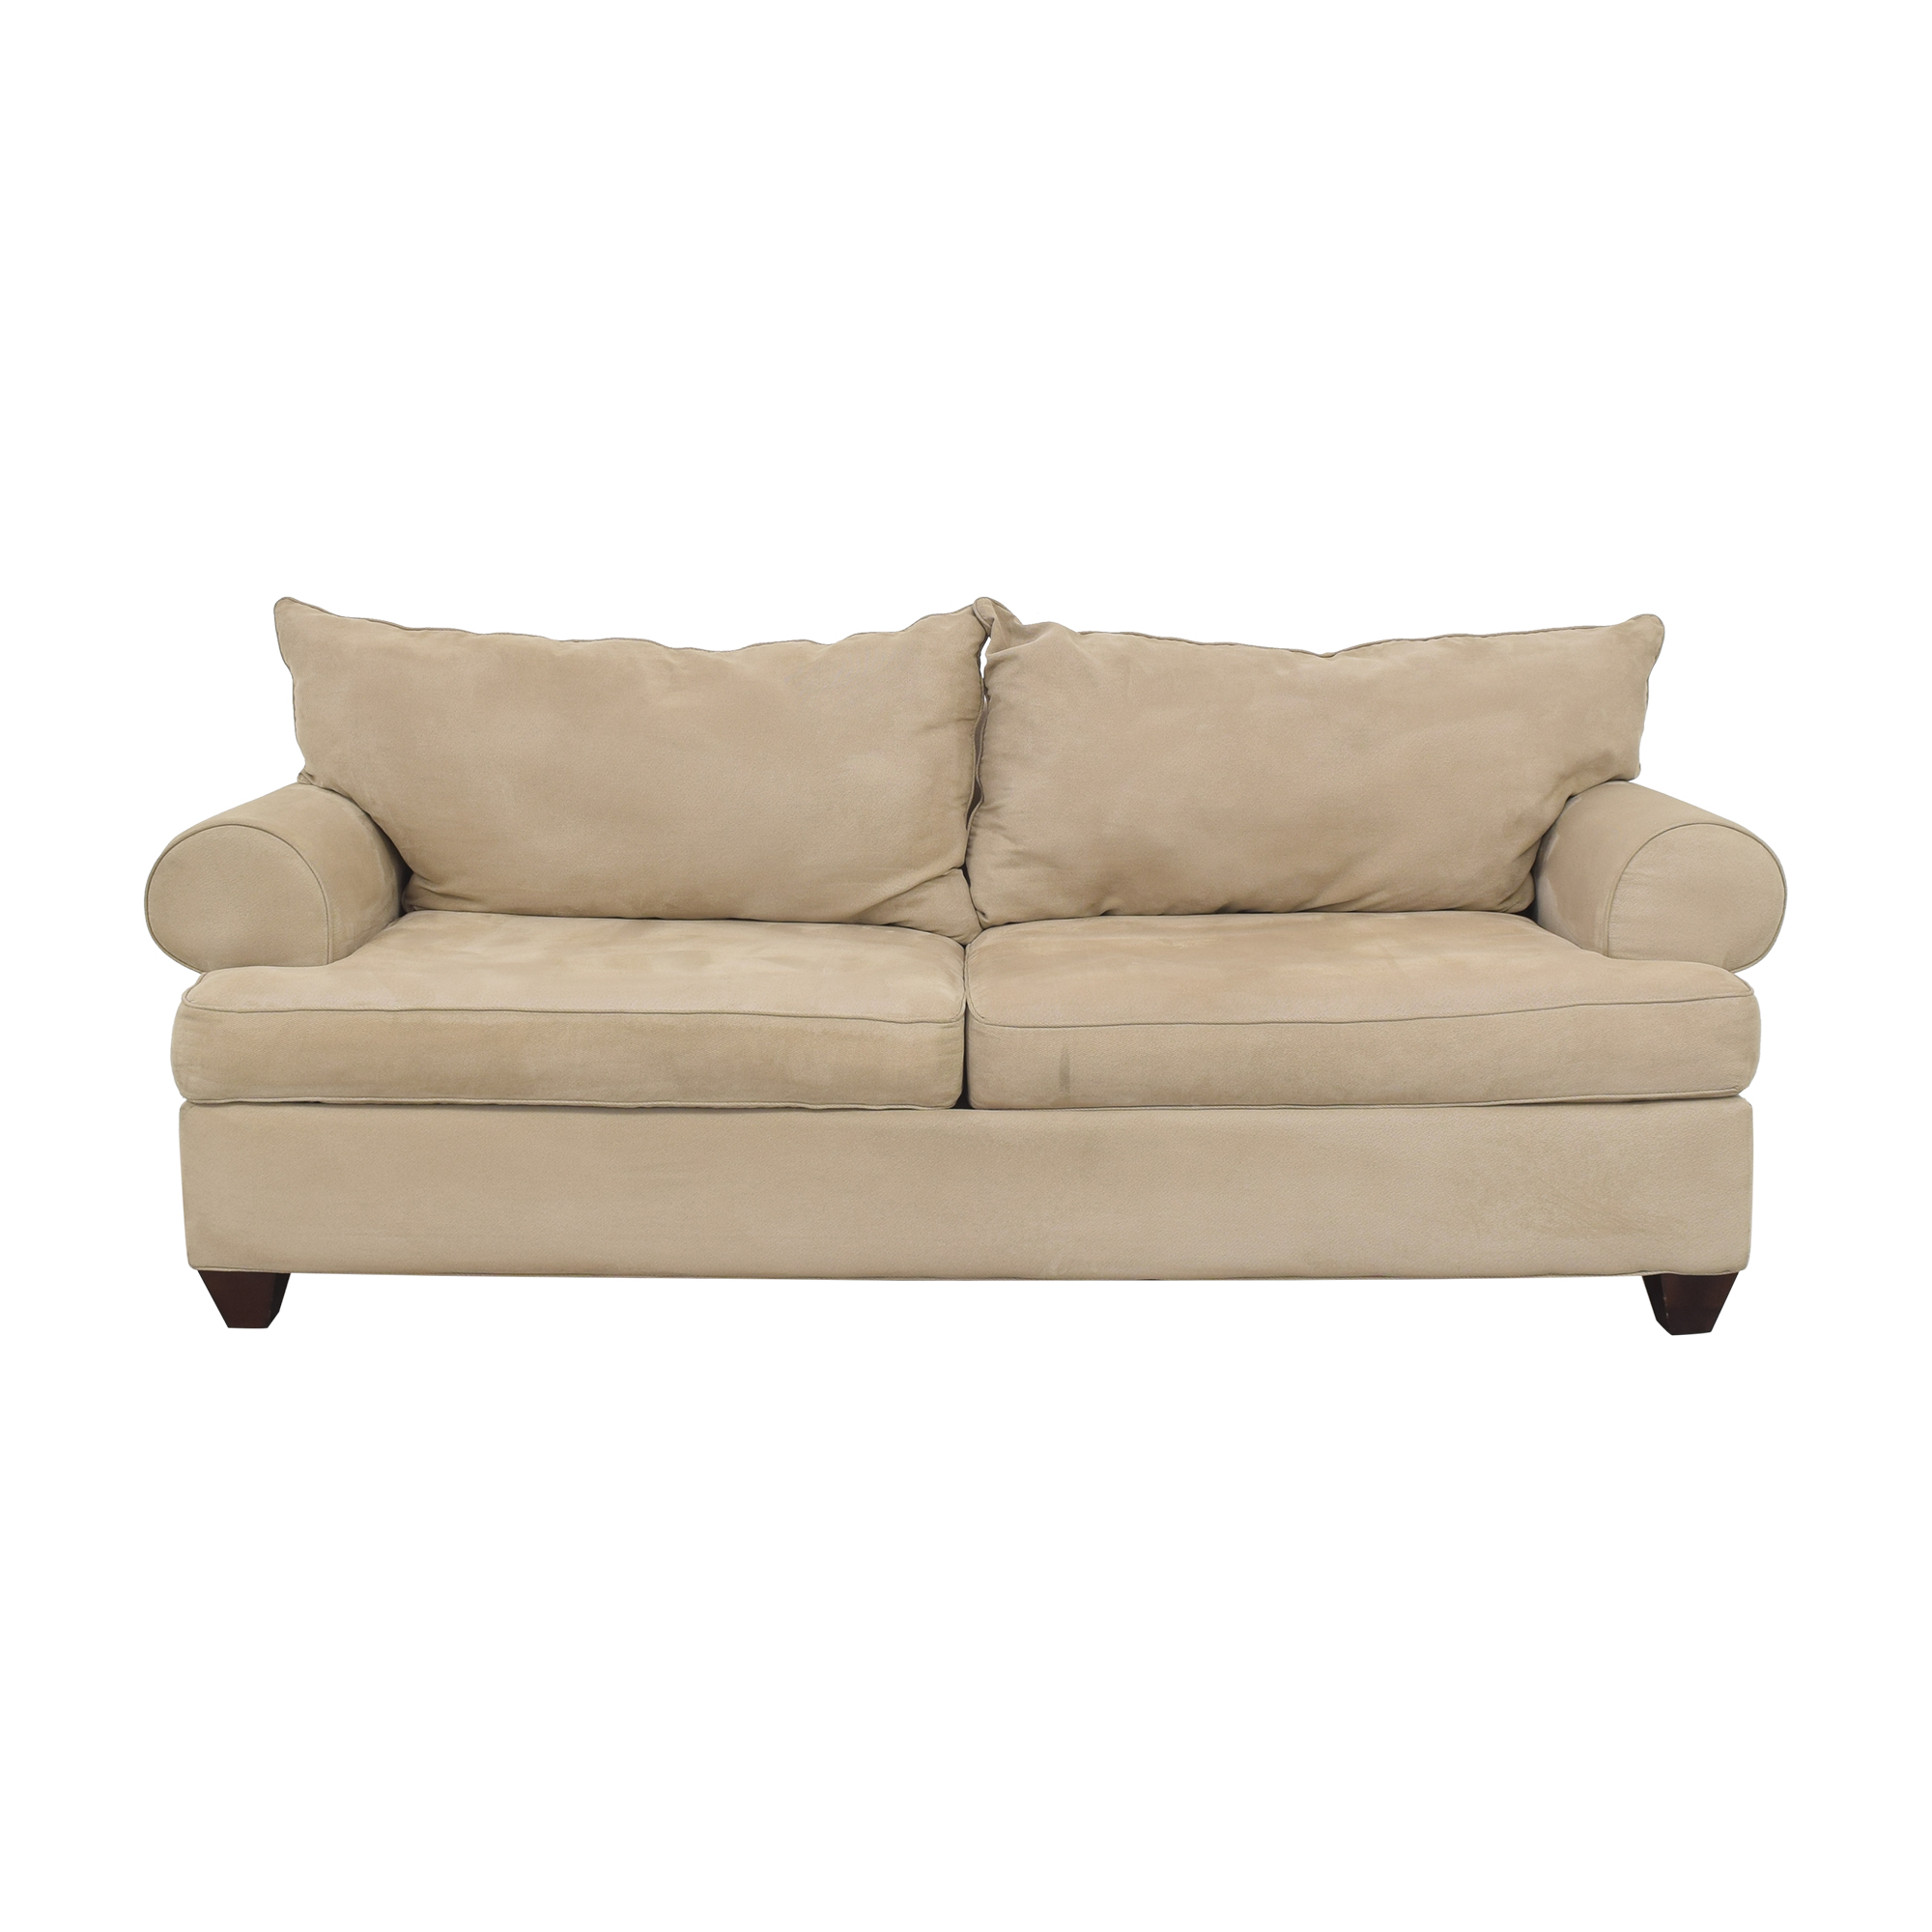 buy Raymour & Flanigan Two Cushion Sofa Raymour & Flanigan